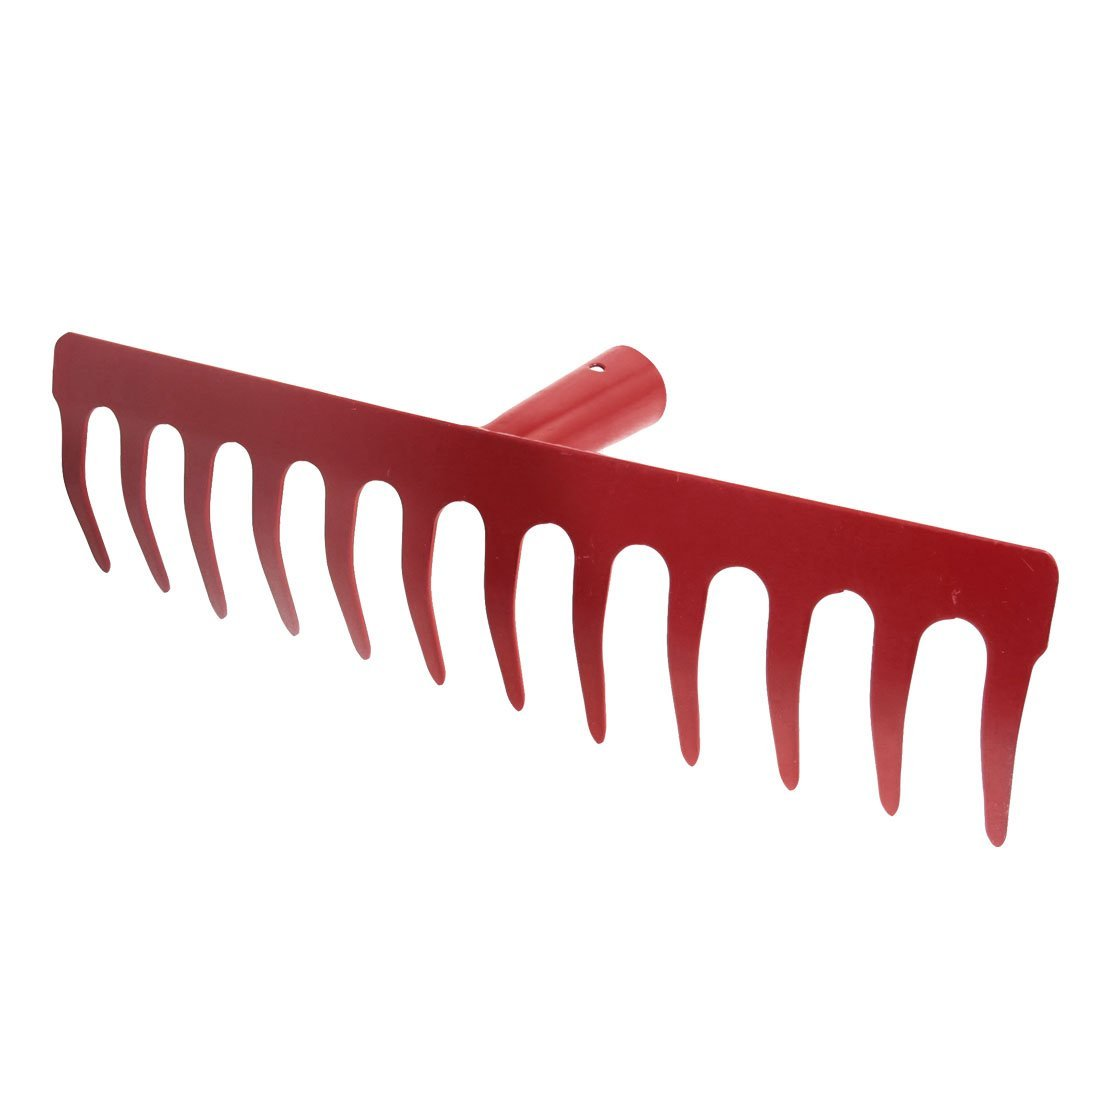 SODIAL(R) Metal 12 Tine Hand Cultivator Rake Tool Head Red